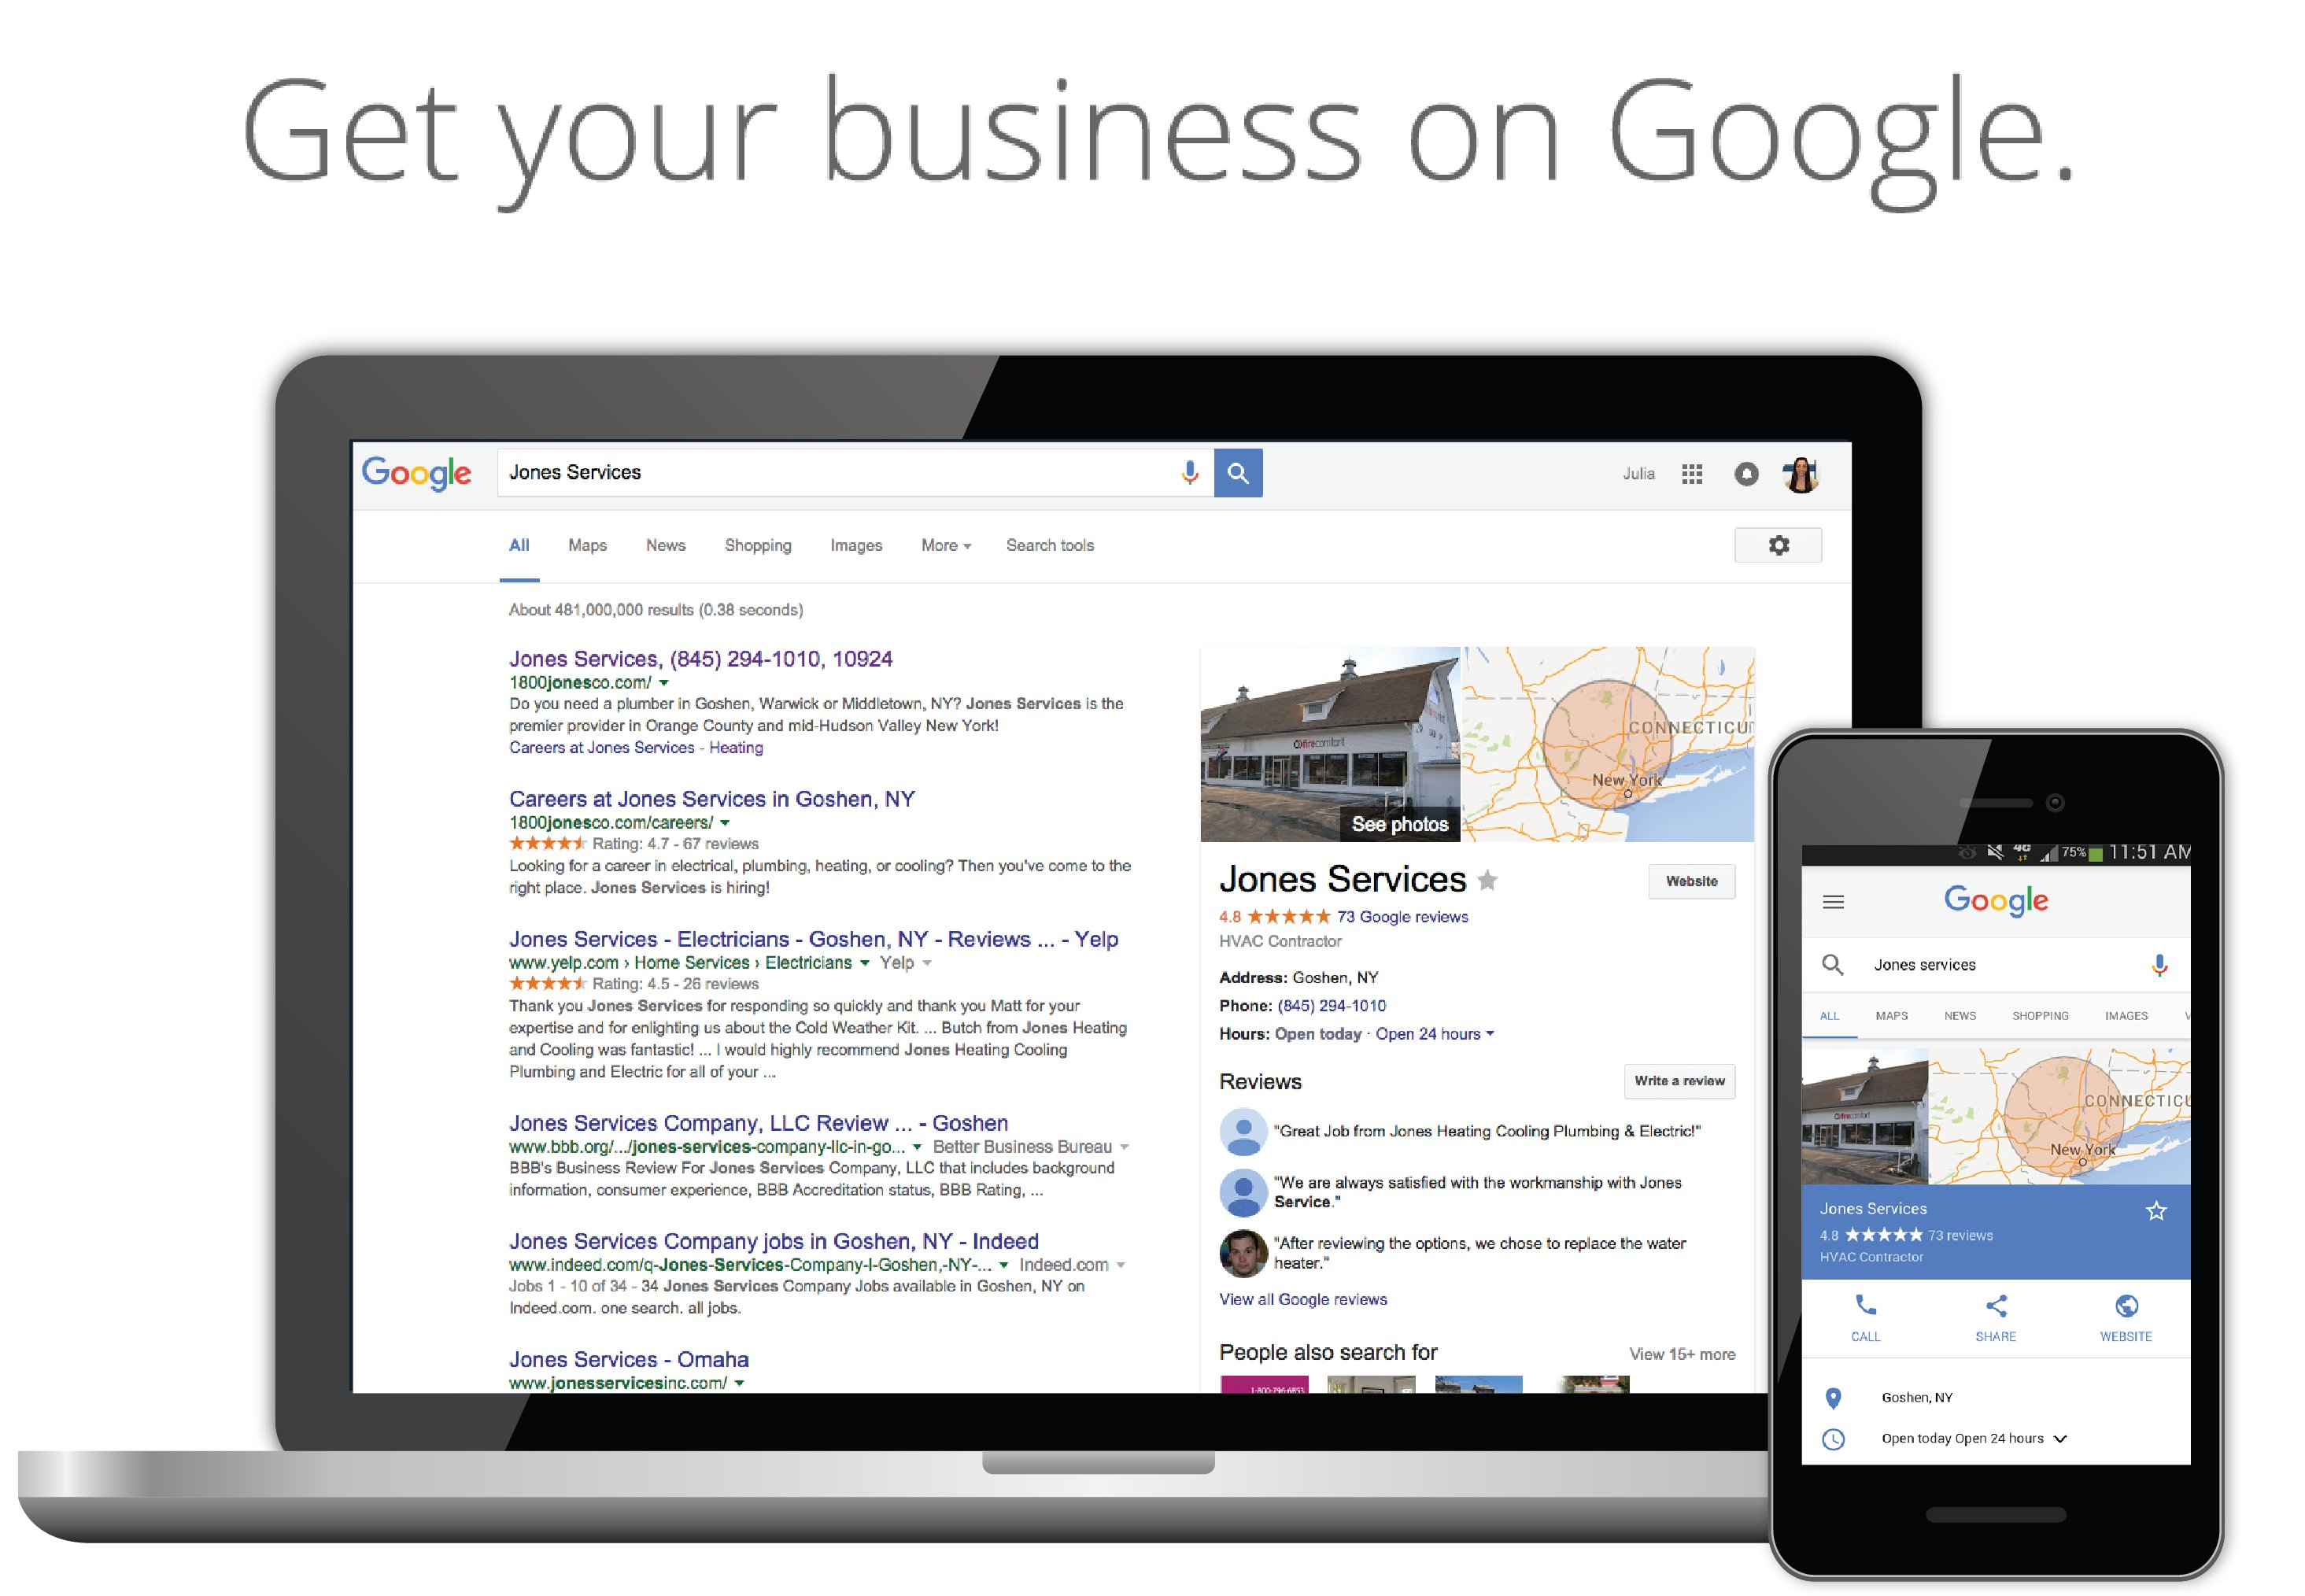 10-Point Checklist for Optimizing Your Google My Business